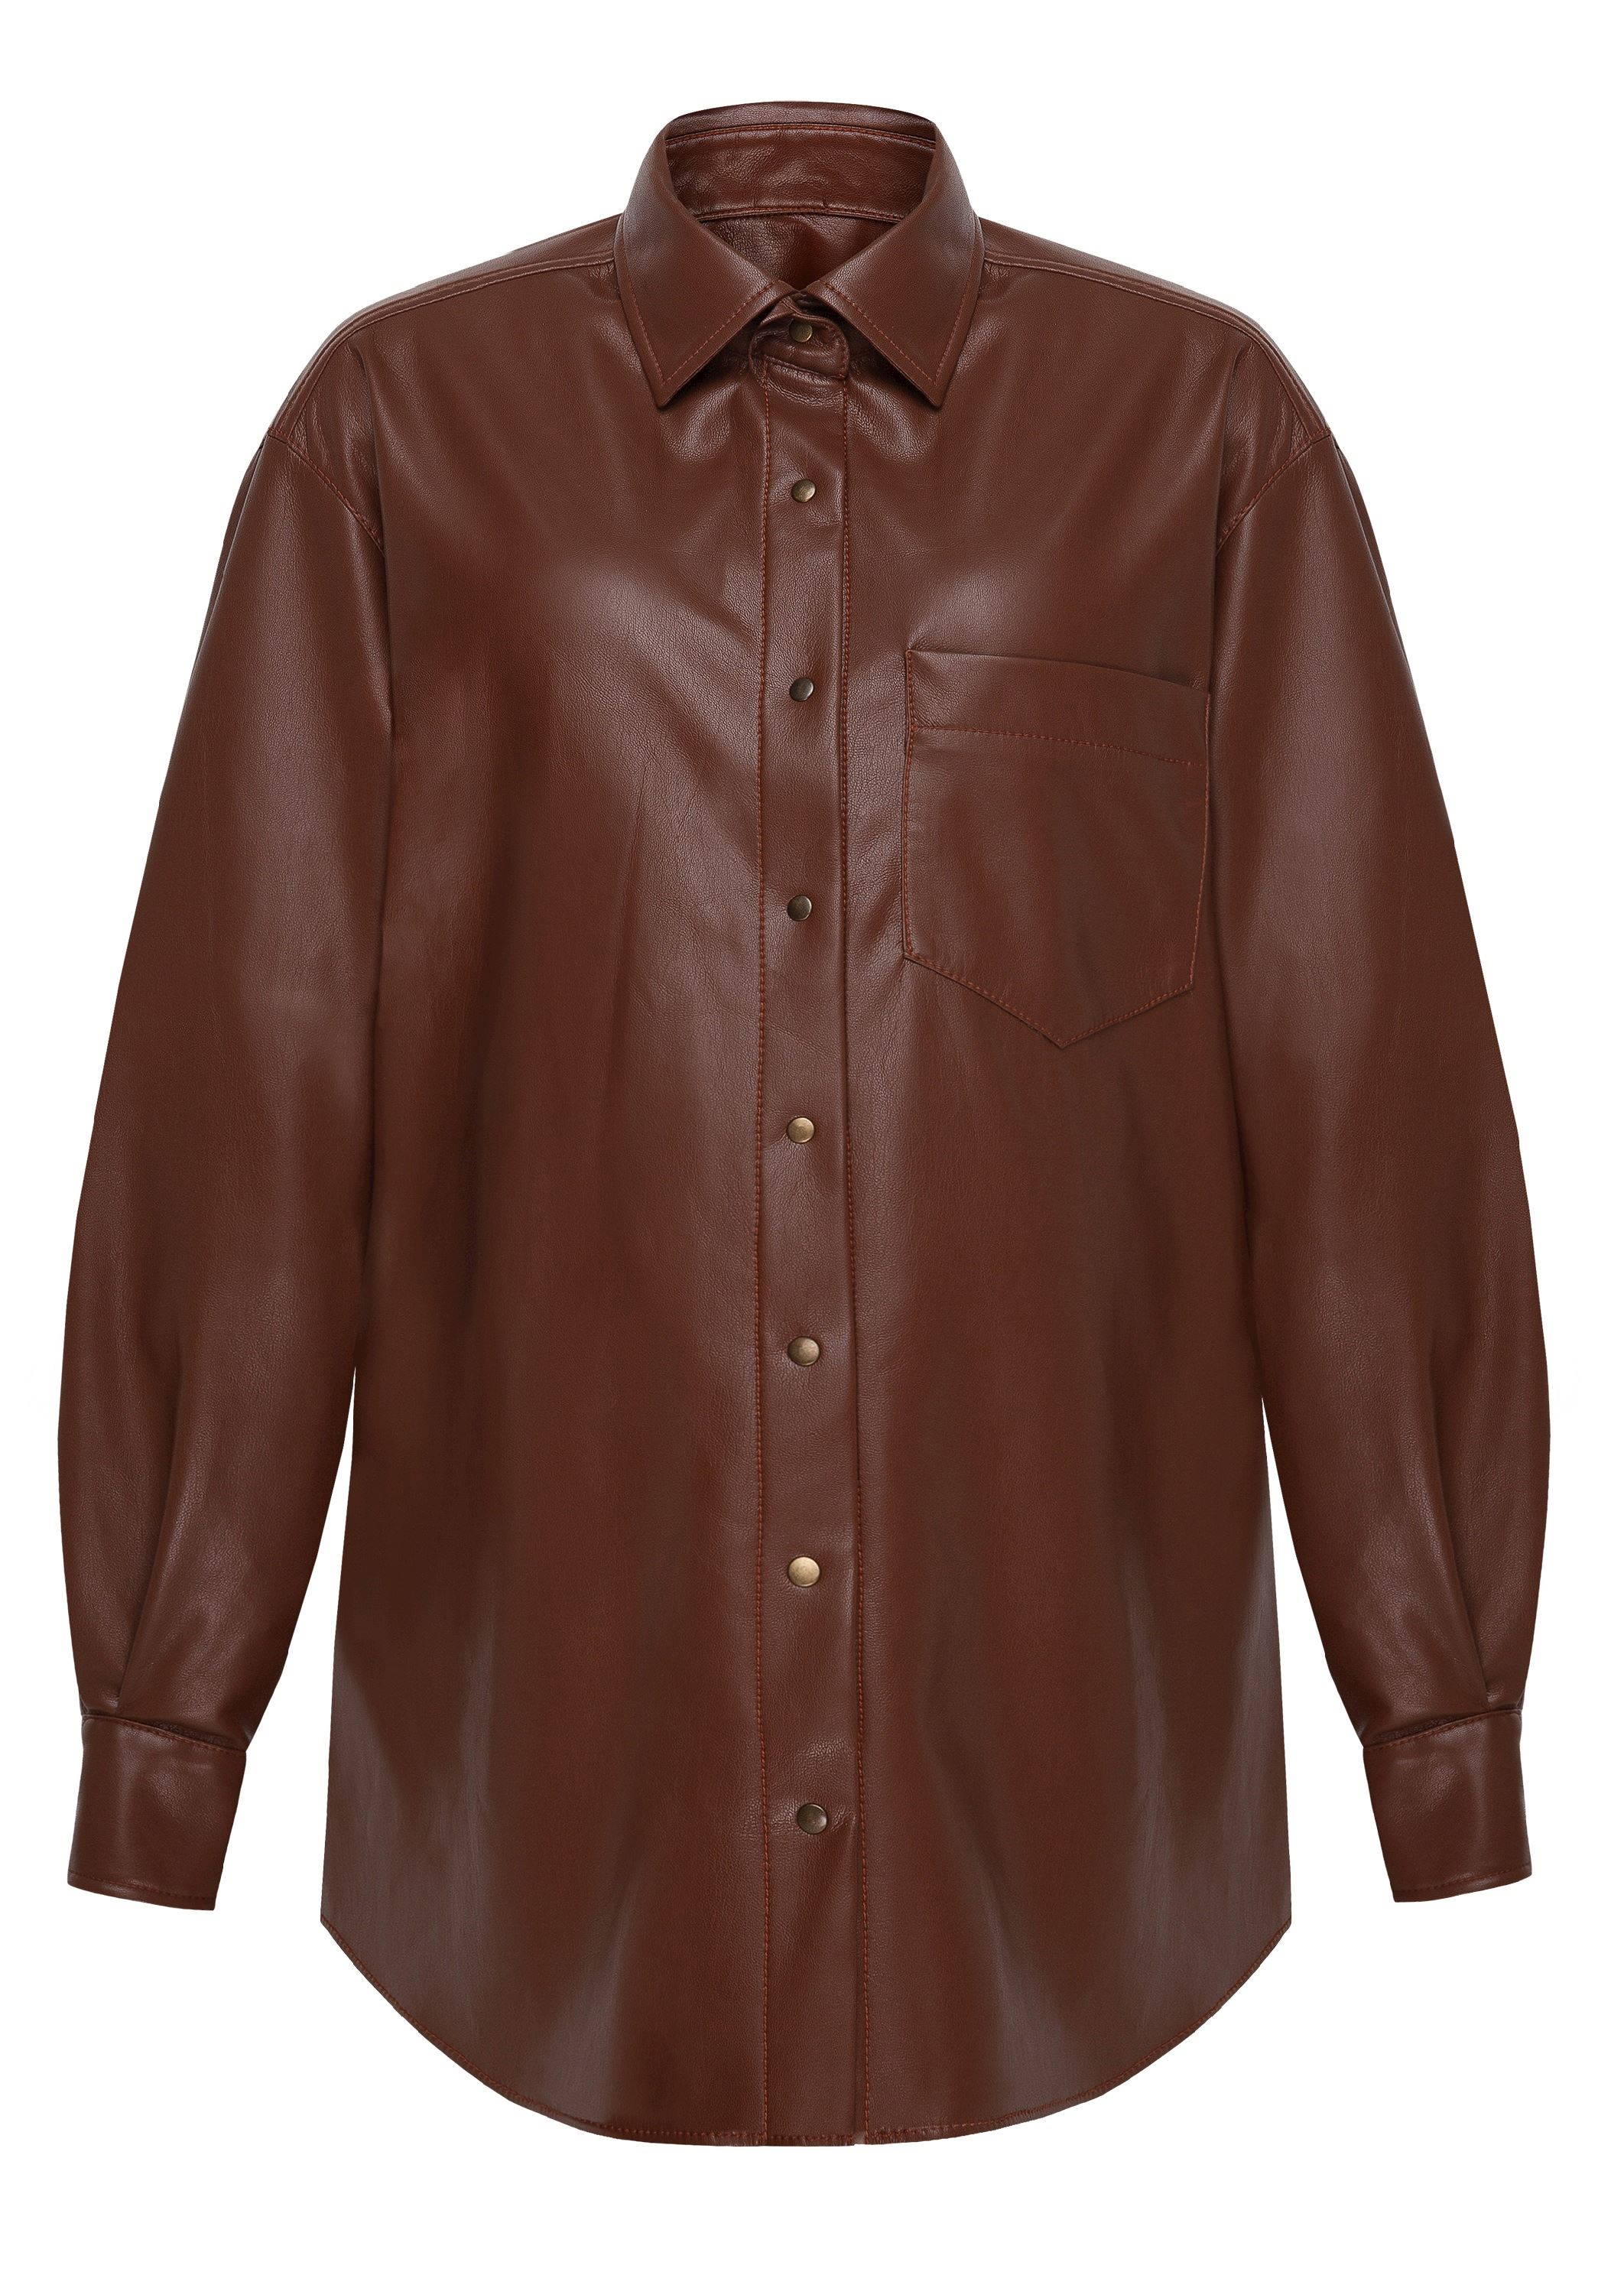 Caramel color maternity shirt made of eco-leather